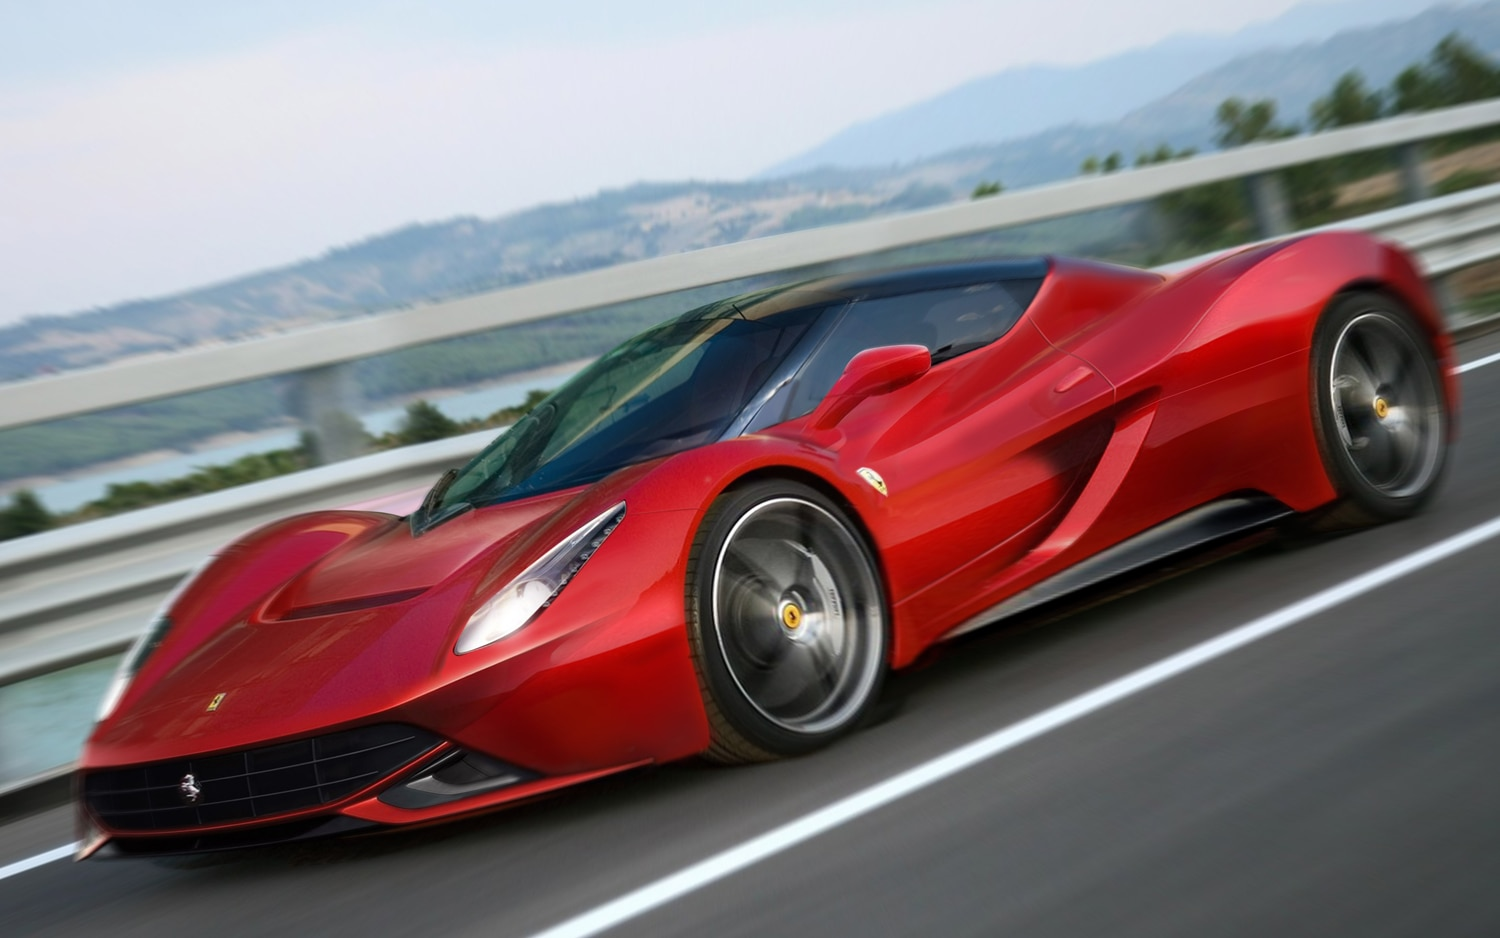 Is This Leaked Teaser The New Ferrari F70